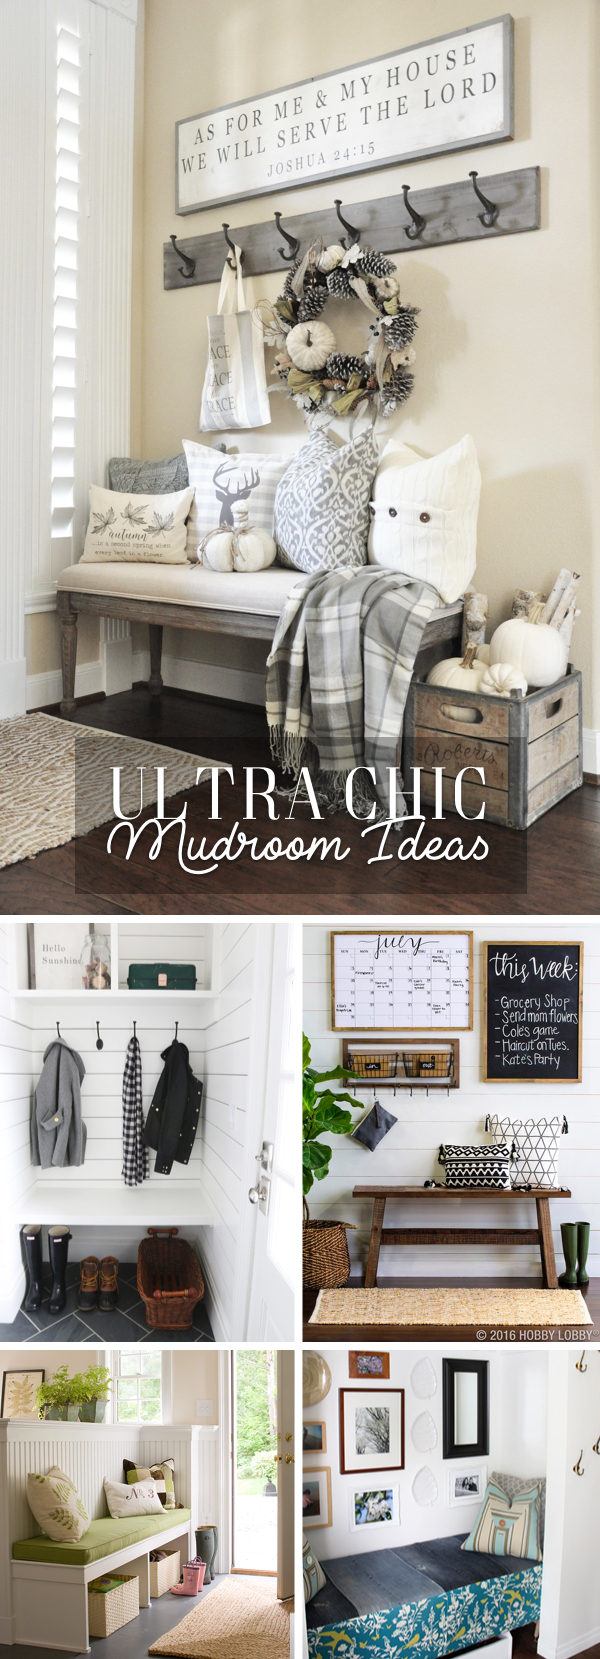 24 Ultra Chic Mudroom Ideas Turning Your Entryway into an Innovative Storage